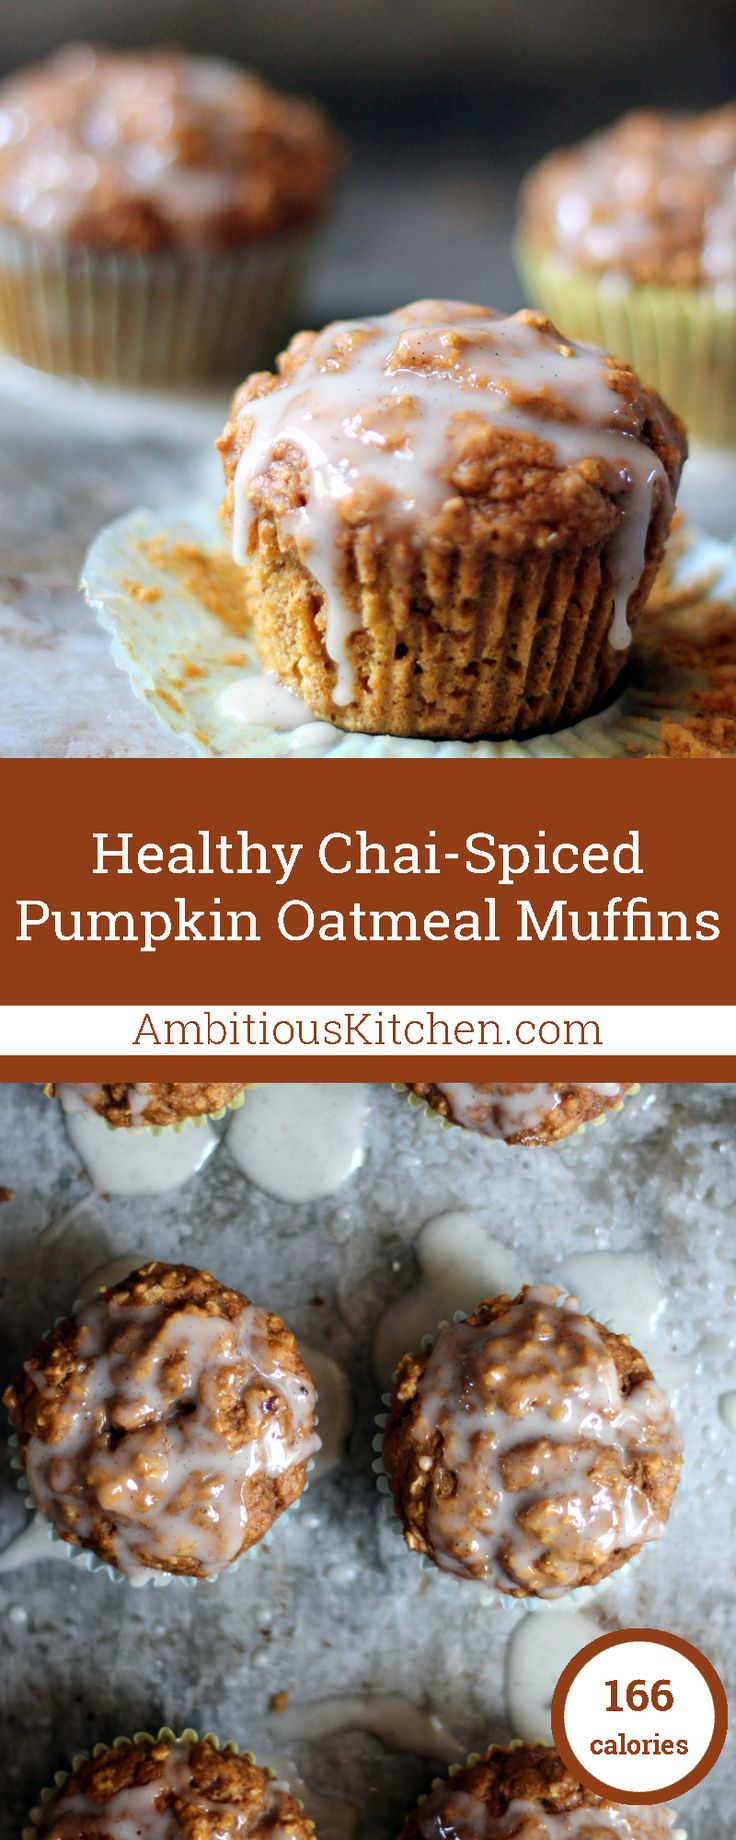 Healthy Chai-Spiced Pumpkin Oatmeal Muffins with a lovely cream cheese vanilla bean glaze!